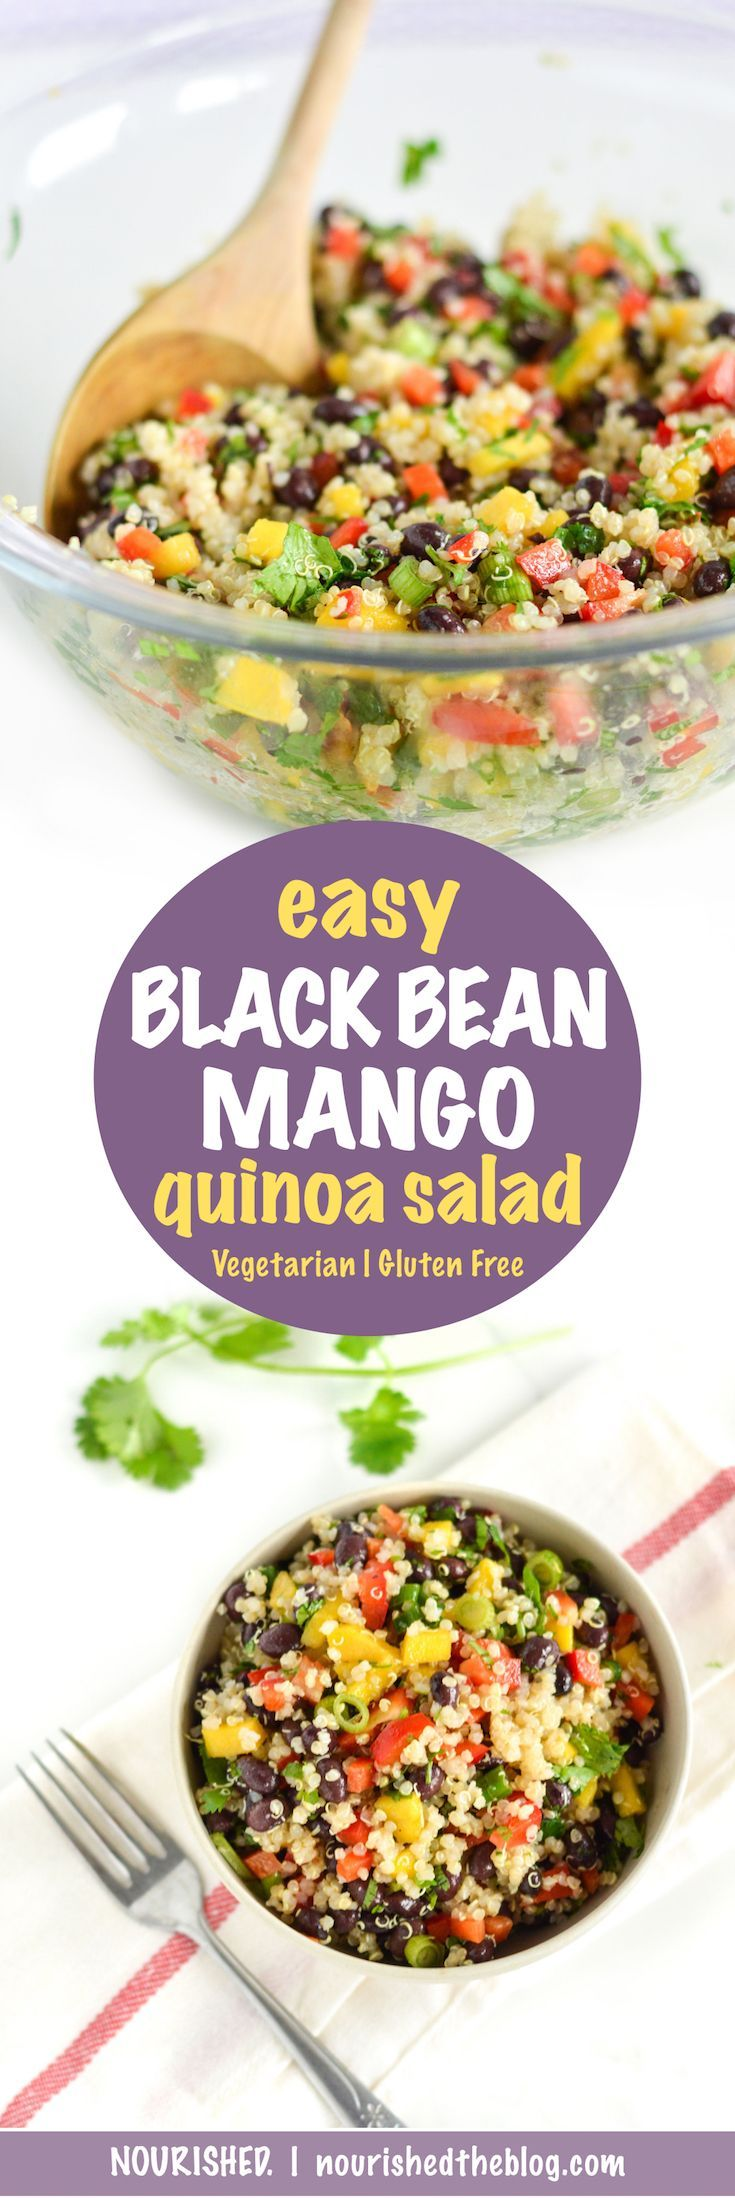 Easy Black Bean Mango Quinoa Salad | recipe | gluten free, vegan | quinoa salad with zesty lime dressing | easy quinoa recipe |